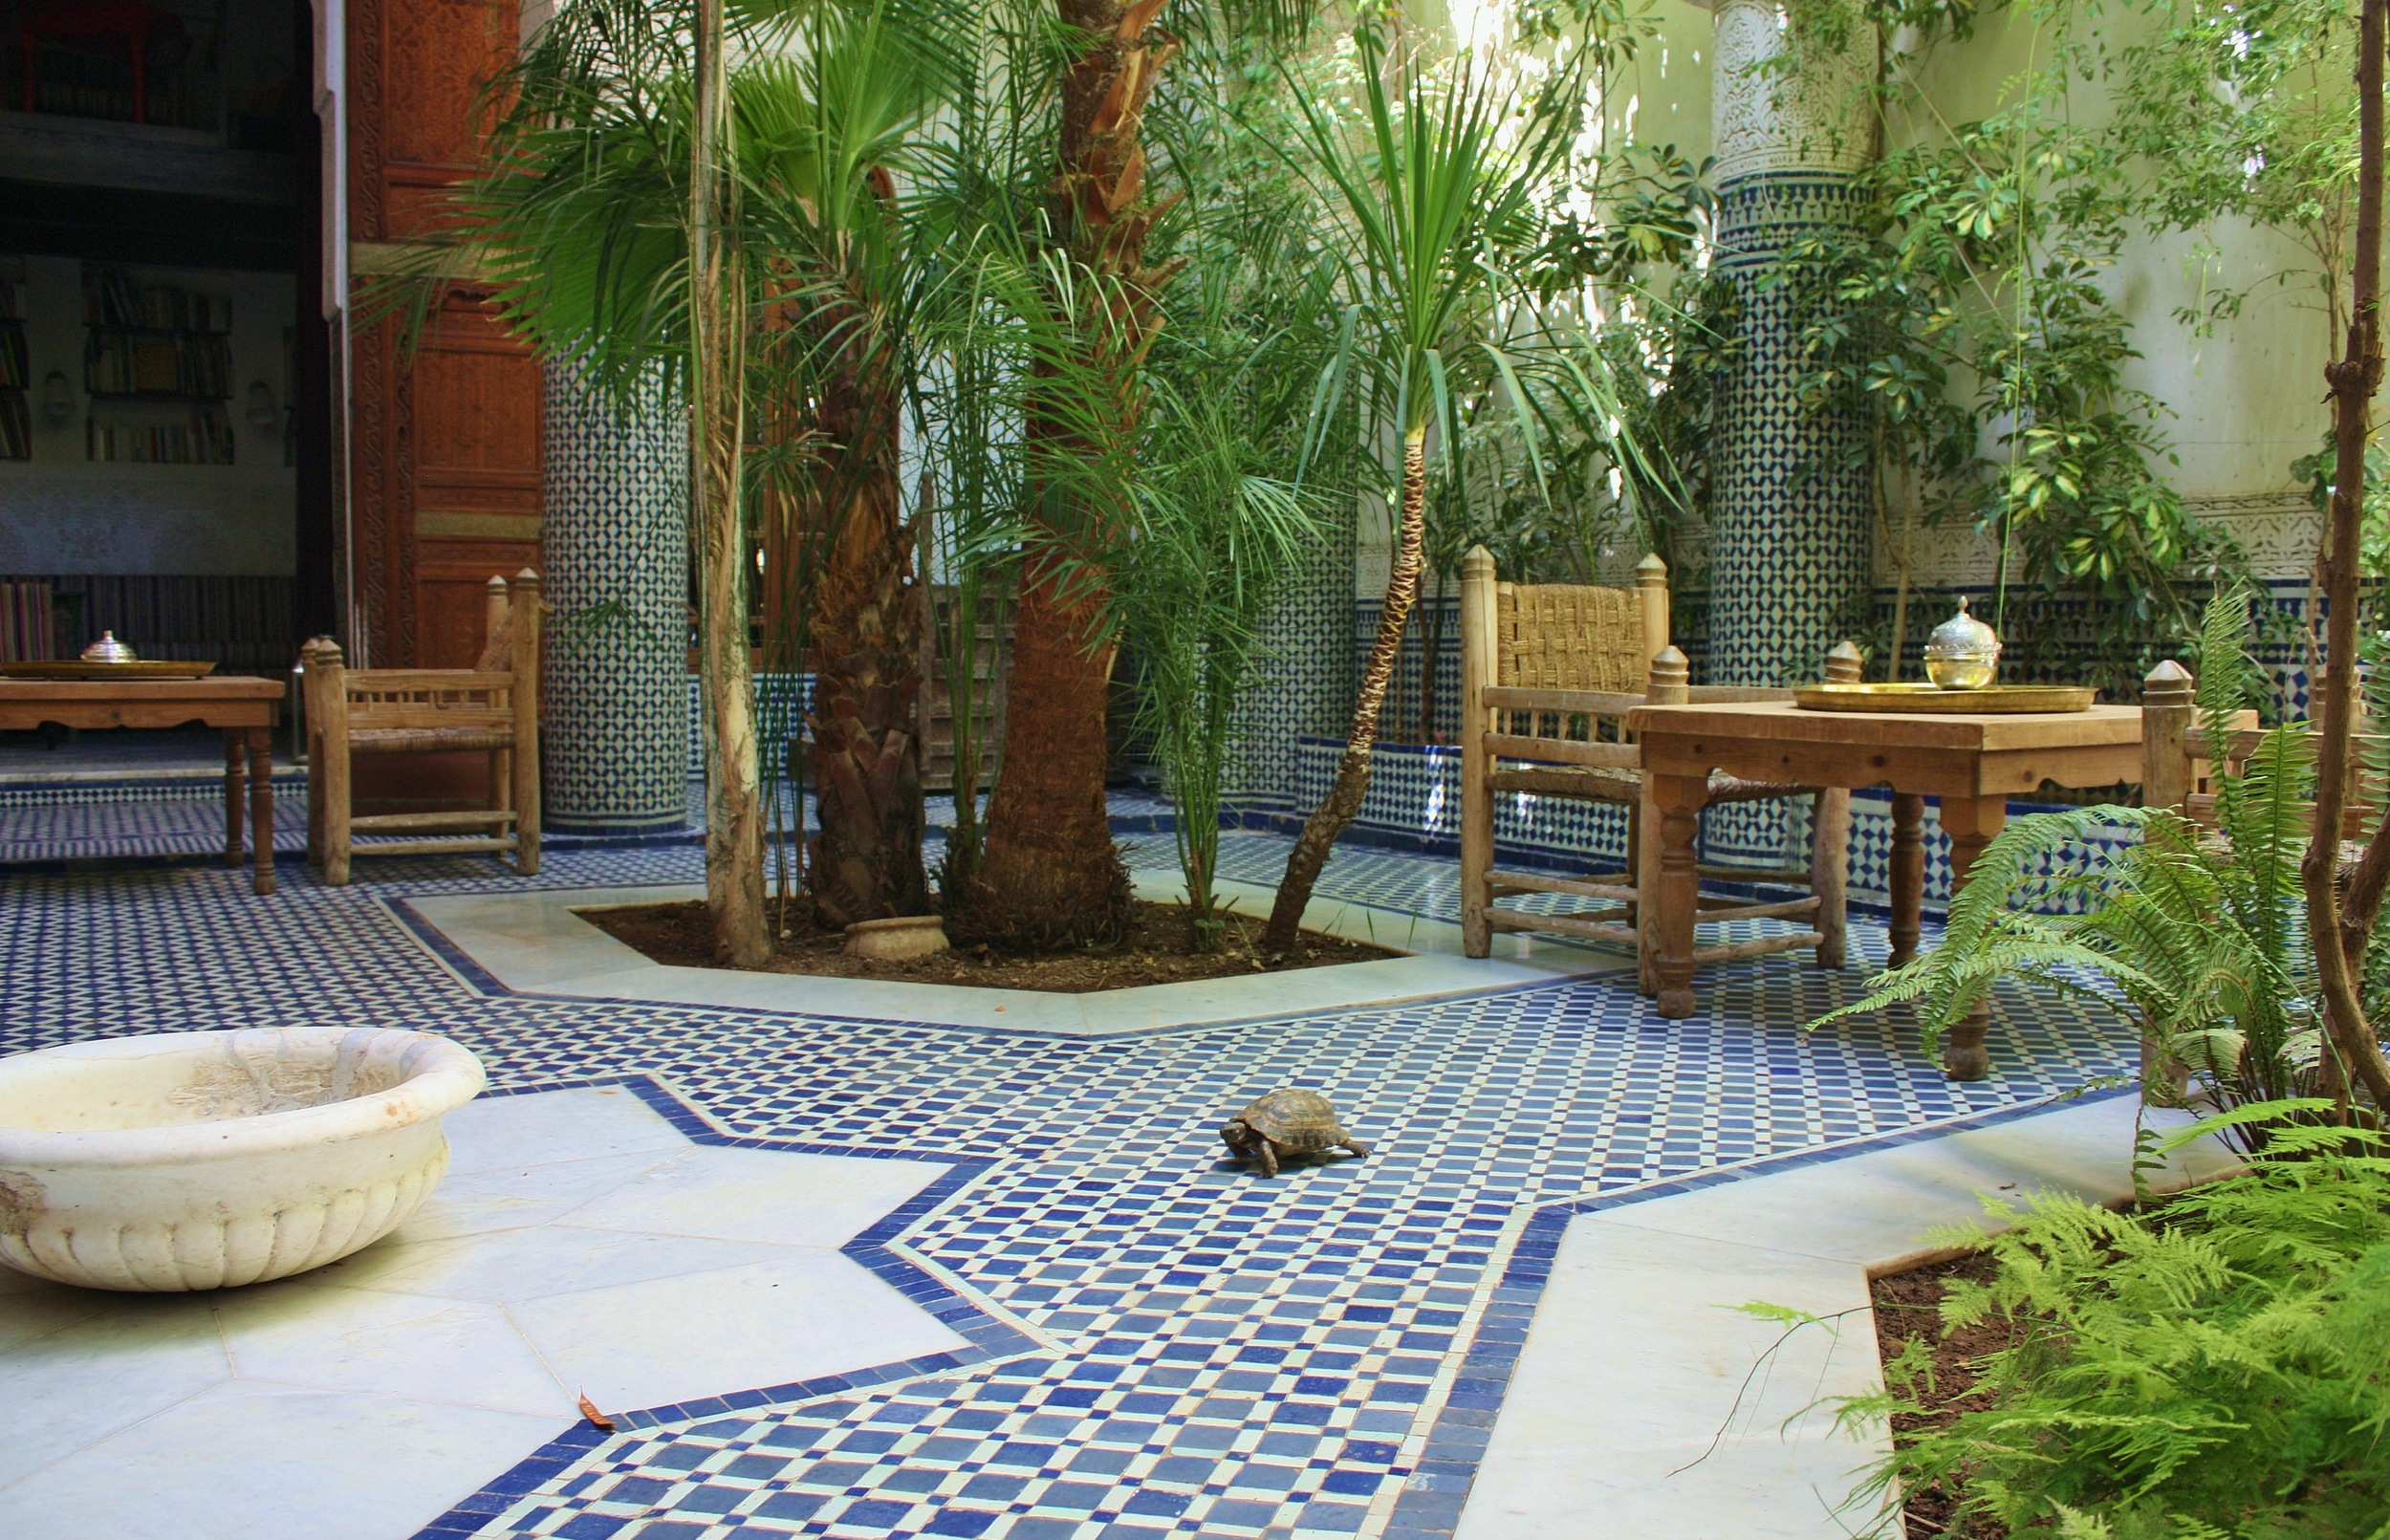 My private oasis: riad courtyard in the old city of Fez in Morocco. Most riads abound with fountains and luxurious textures of tile-work and and hand-carved wood and plaster arts.